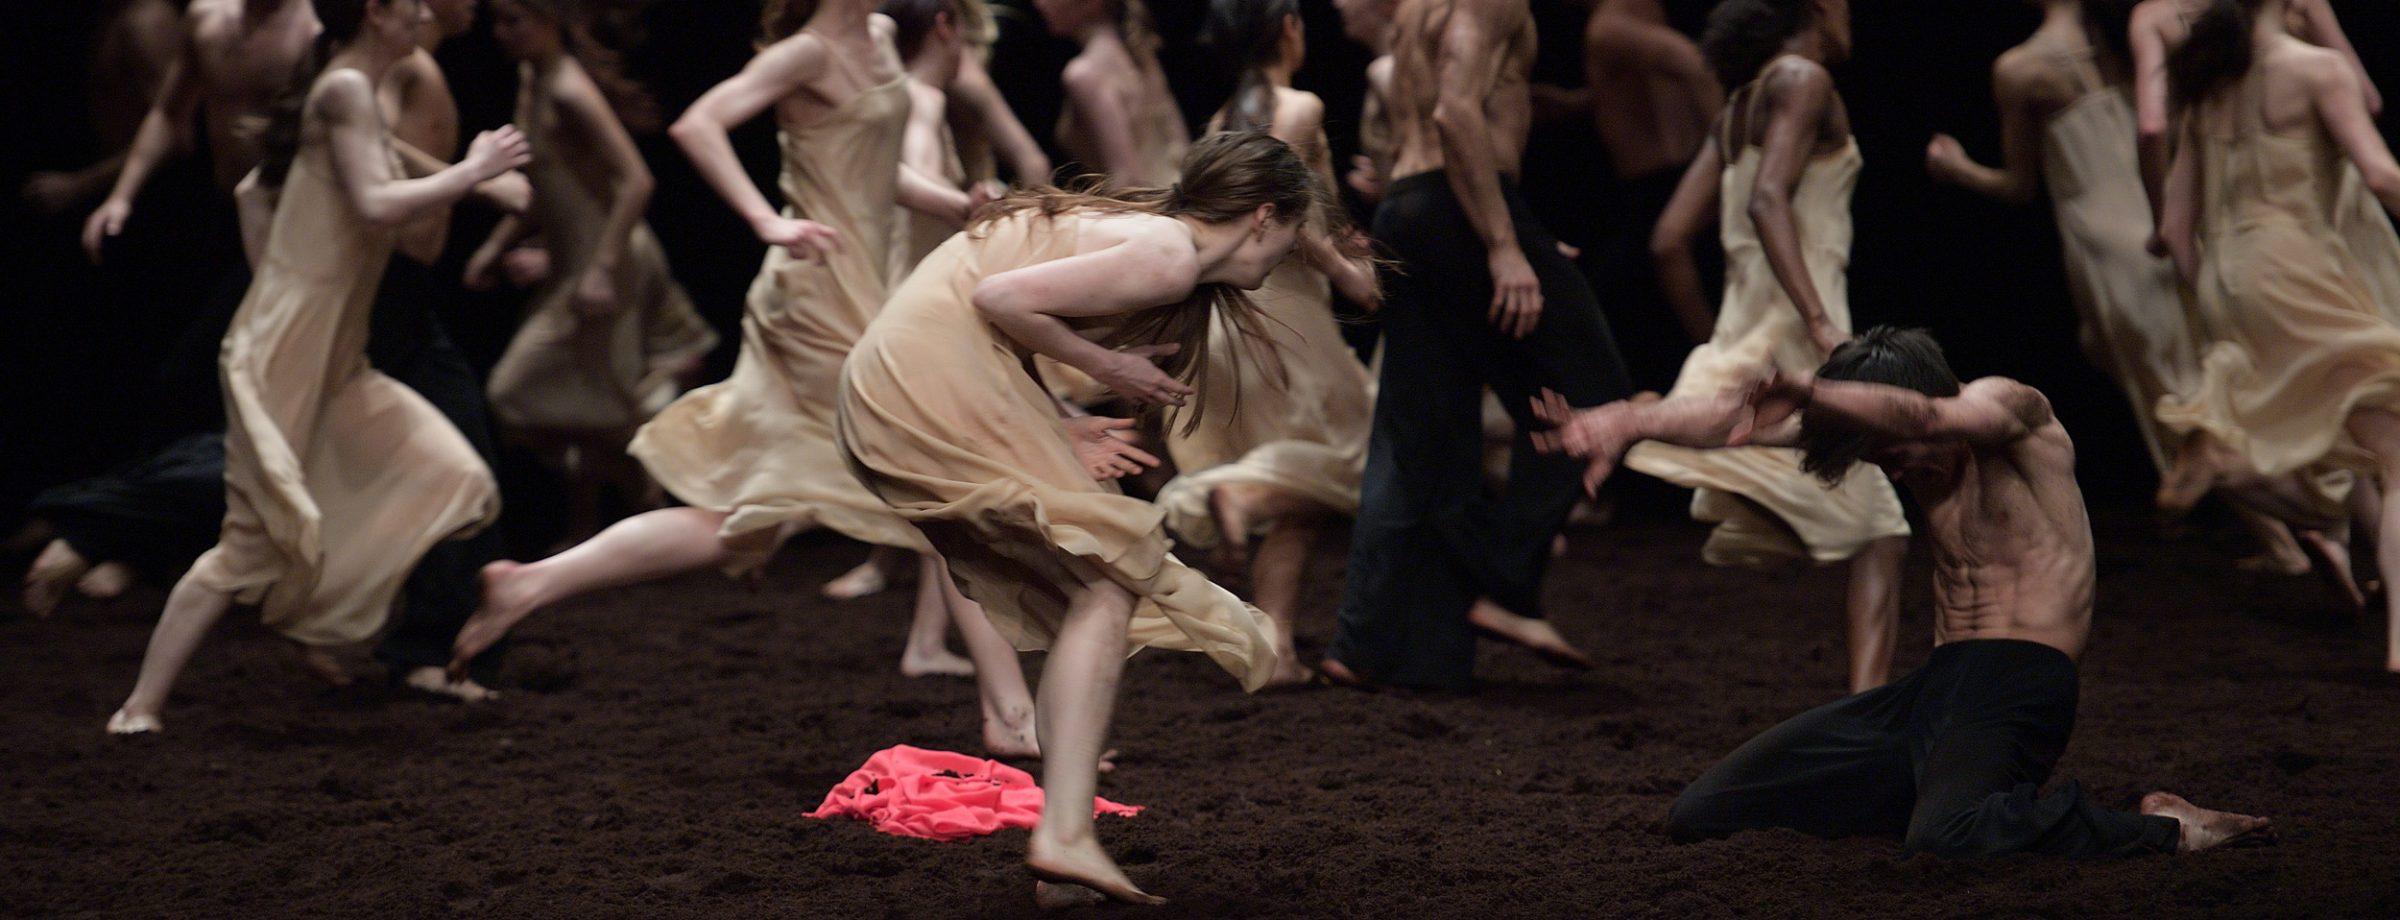 Pina-Bausch's-Le-Sacre-du-printemps-by-English-National-Ballet-(c)-Laurent-Liotardo-(2)-2500px